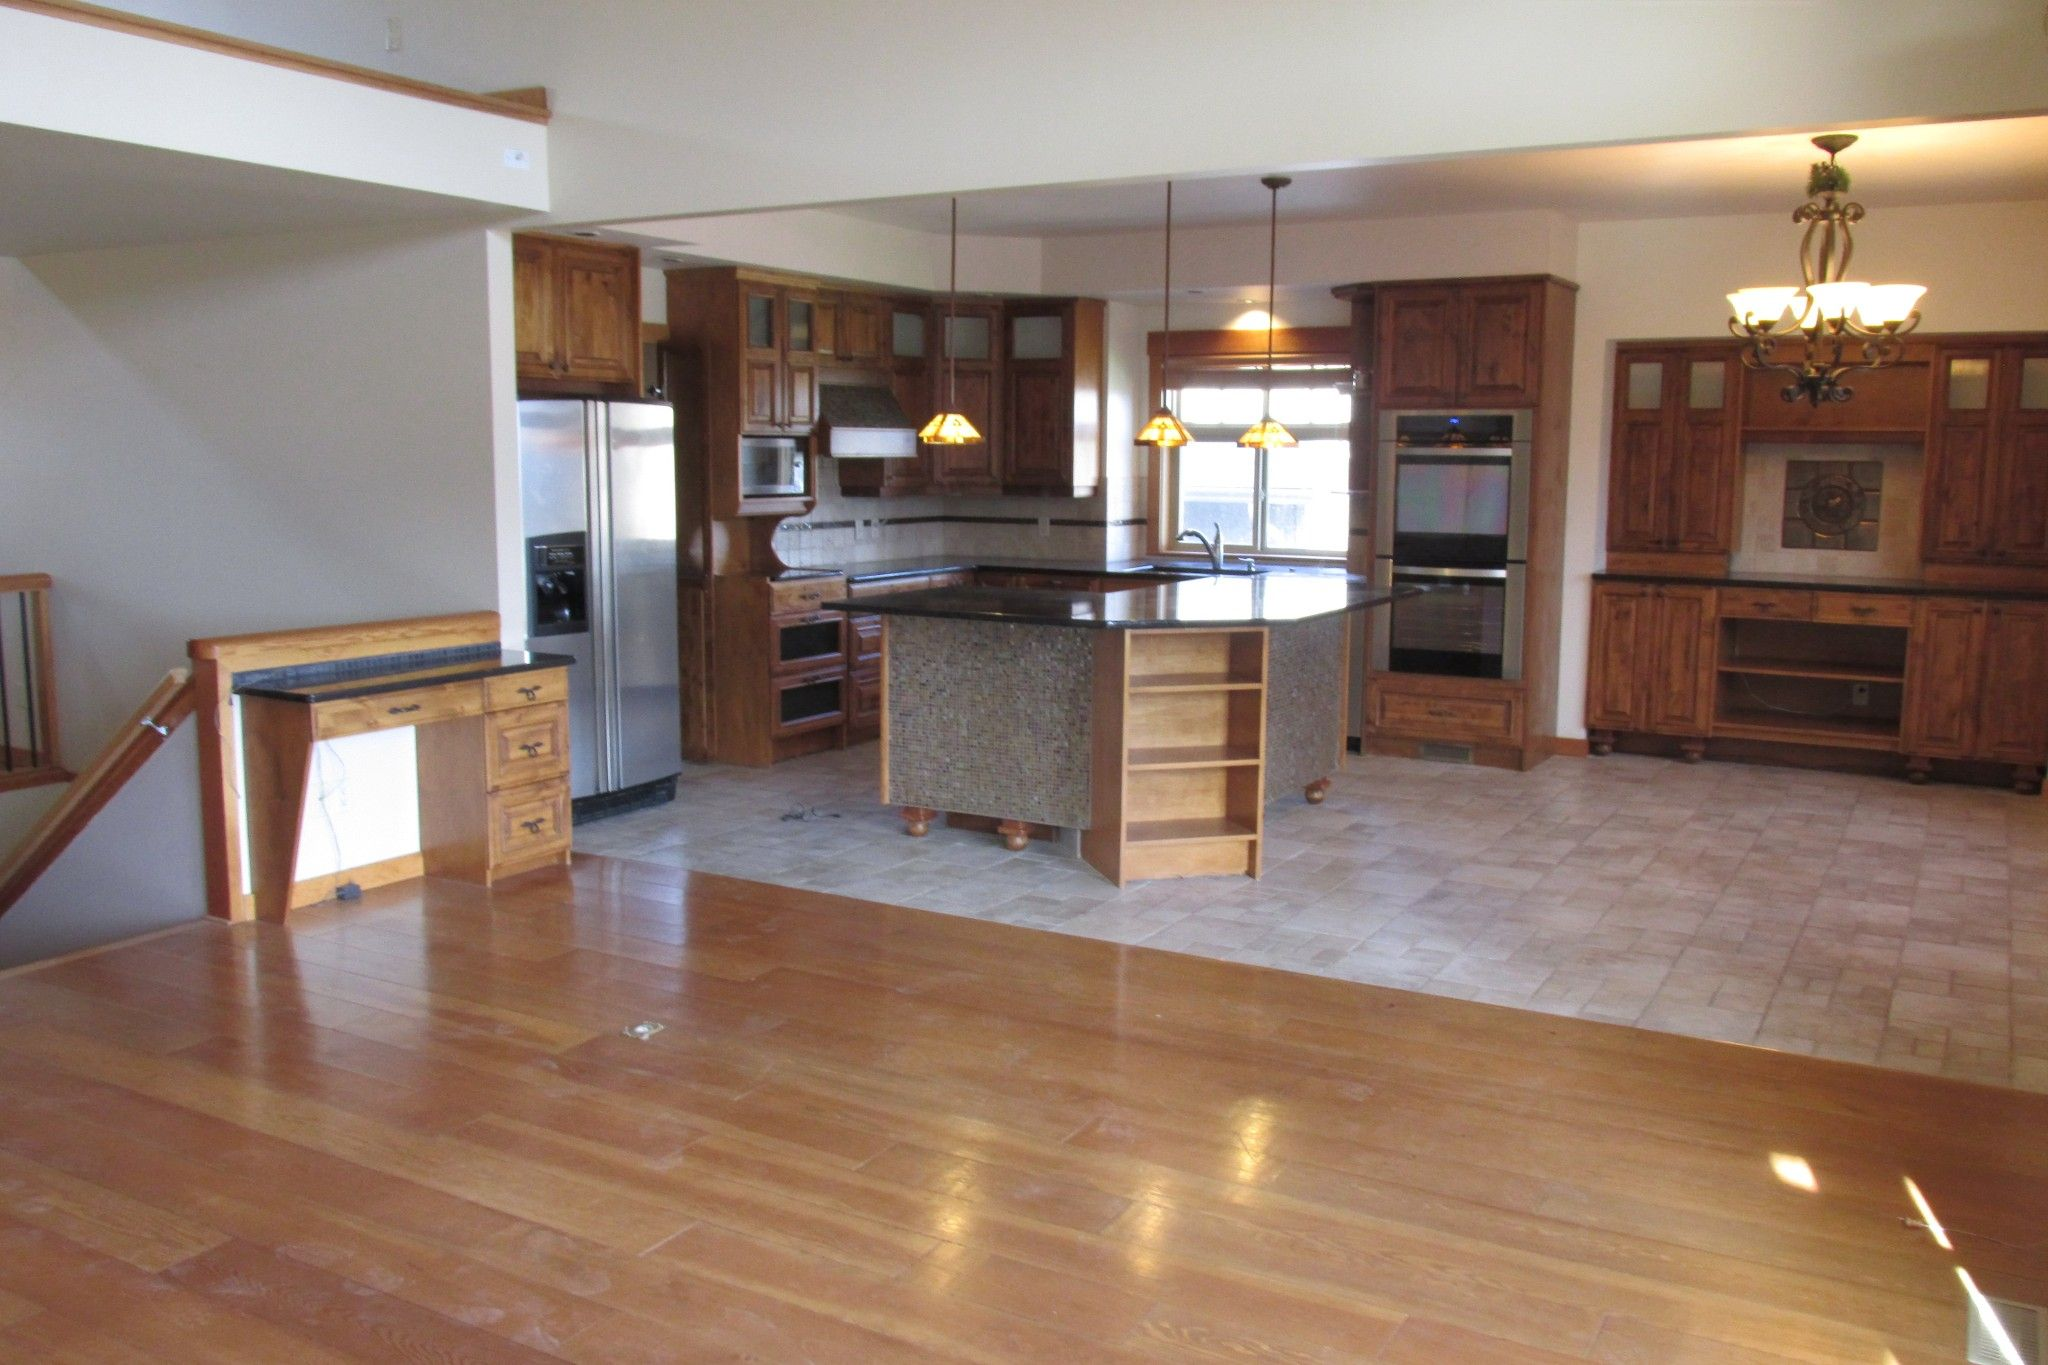 Photo 5: Photos: 1039 Hudson Rd. in West Kelowna: Lakeview Heights House for sale : MLS®# 10181783